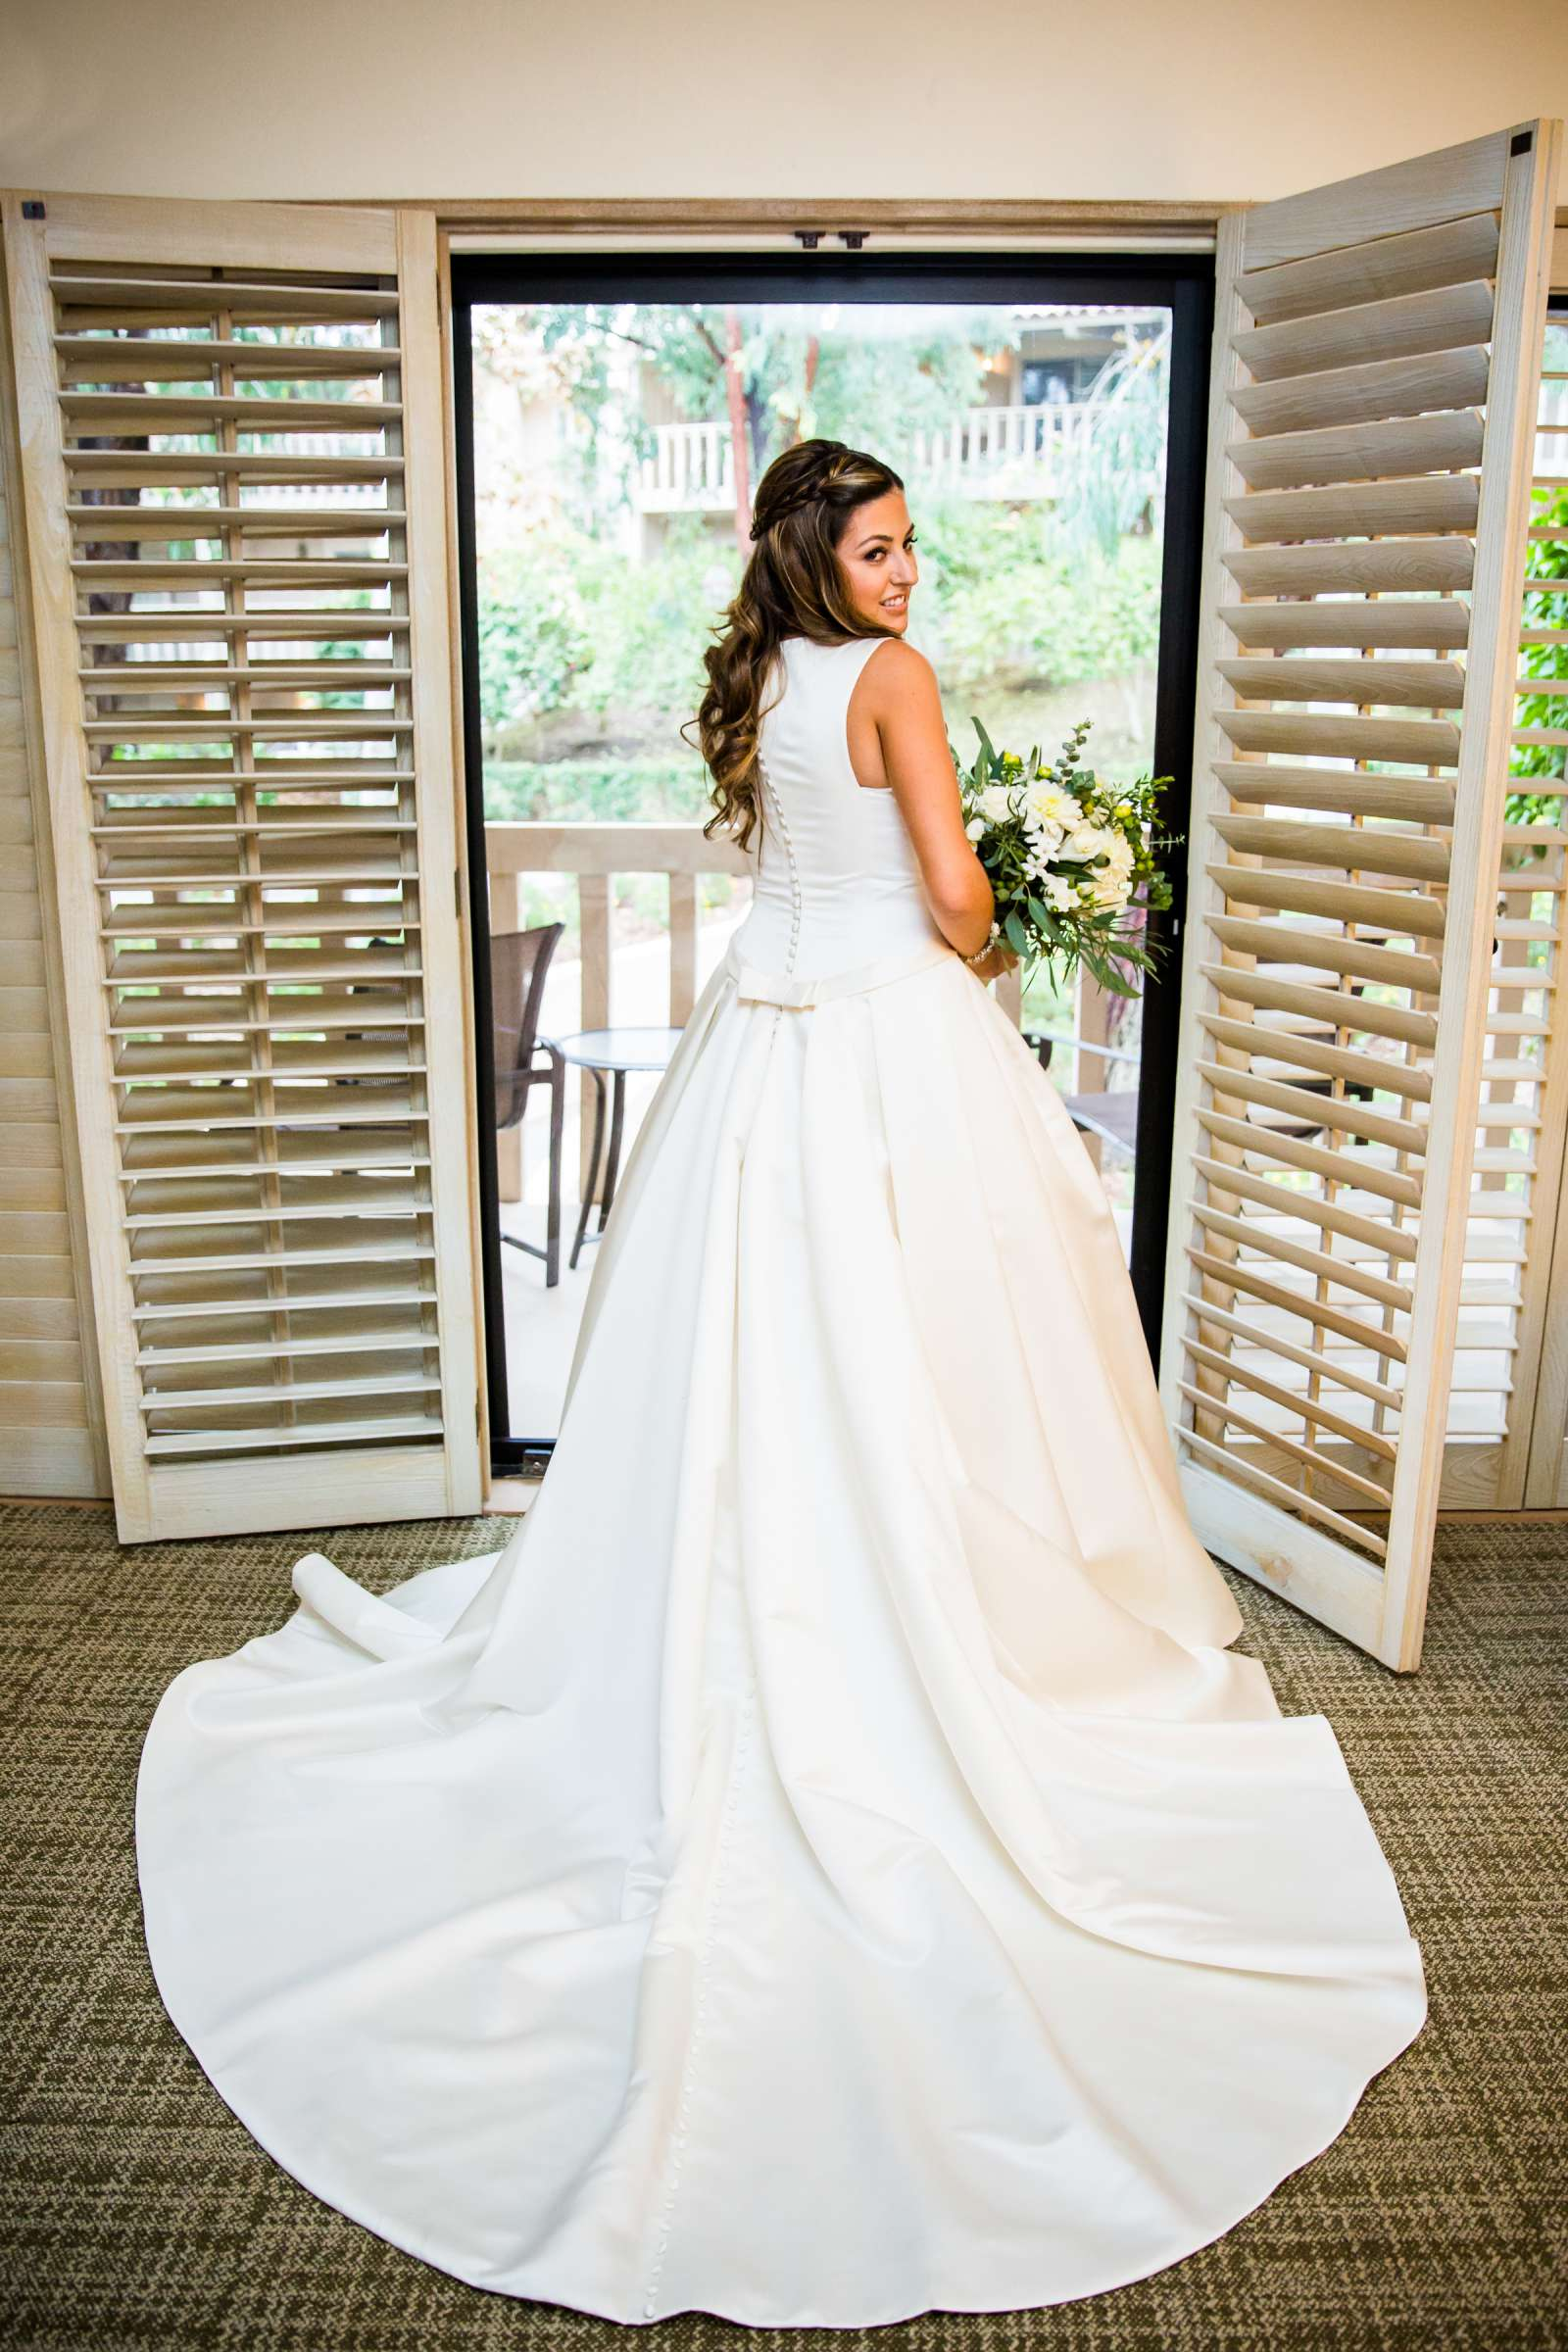 Rancho Bernardo Inn Wedding coordinated by Très Chic Events, Stefania and Nicholas Wedding Photo #24 by True Photography